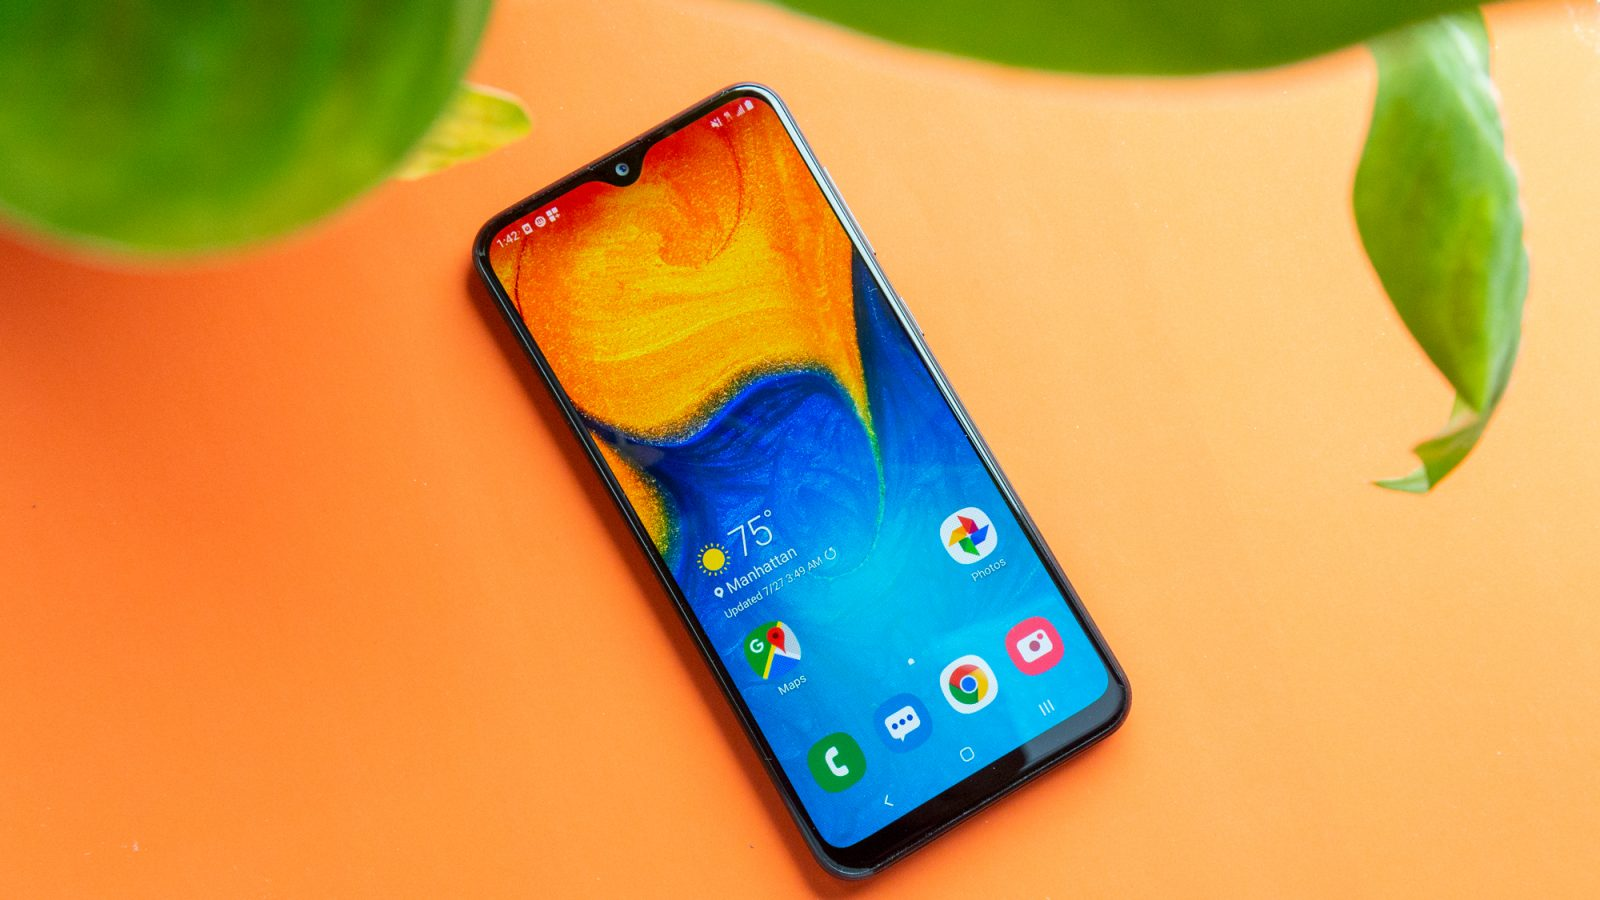 Samsung Galaxy A22 5G is Expected to Arrive by the Second Half of 2021